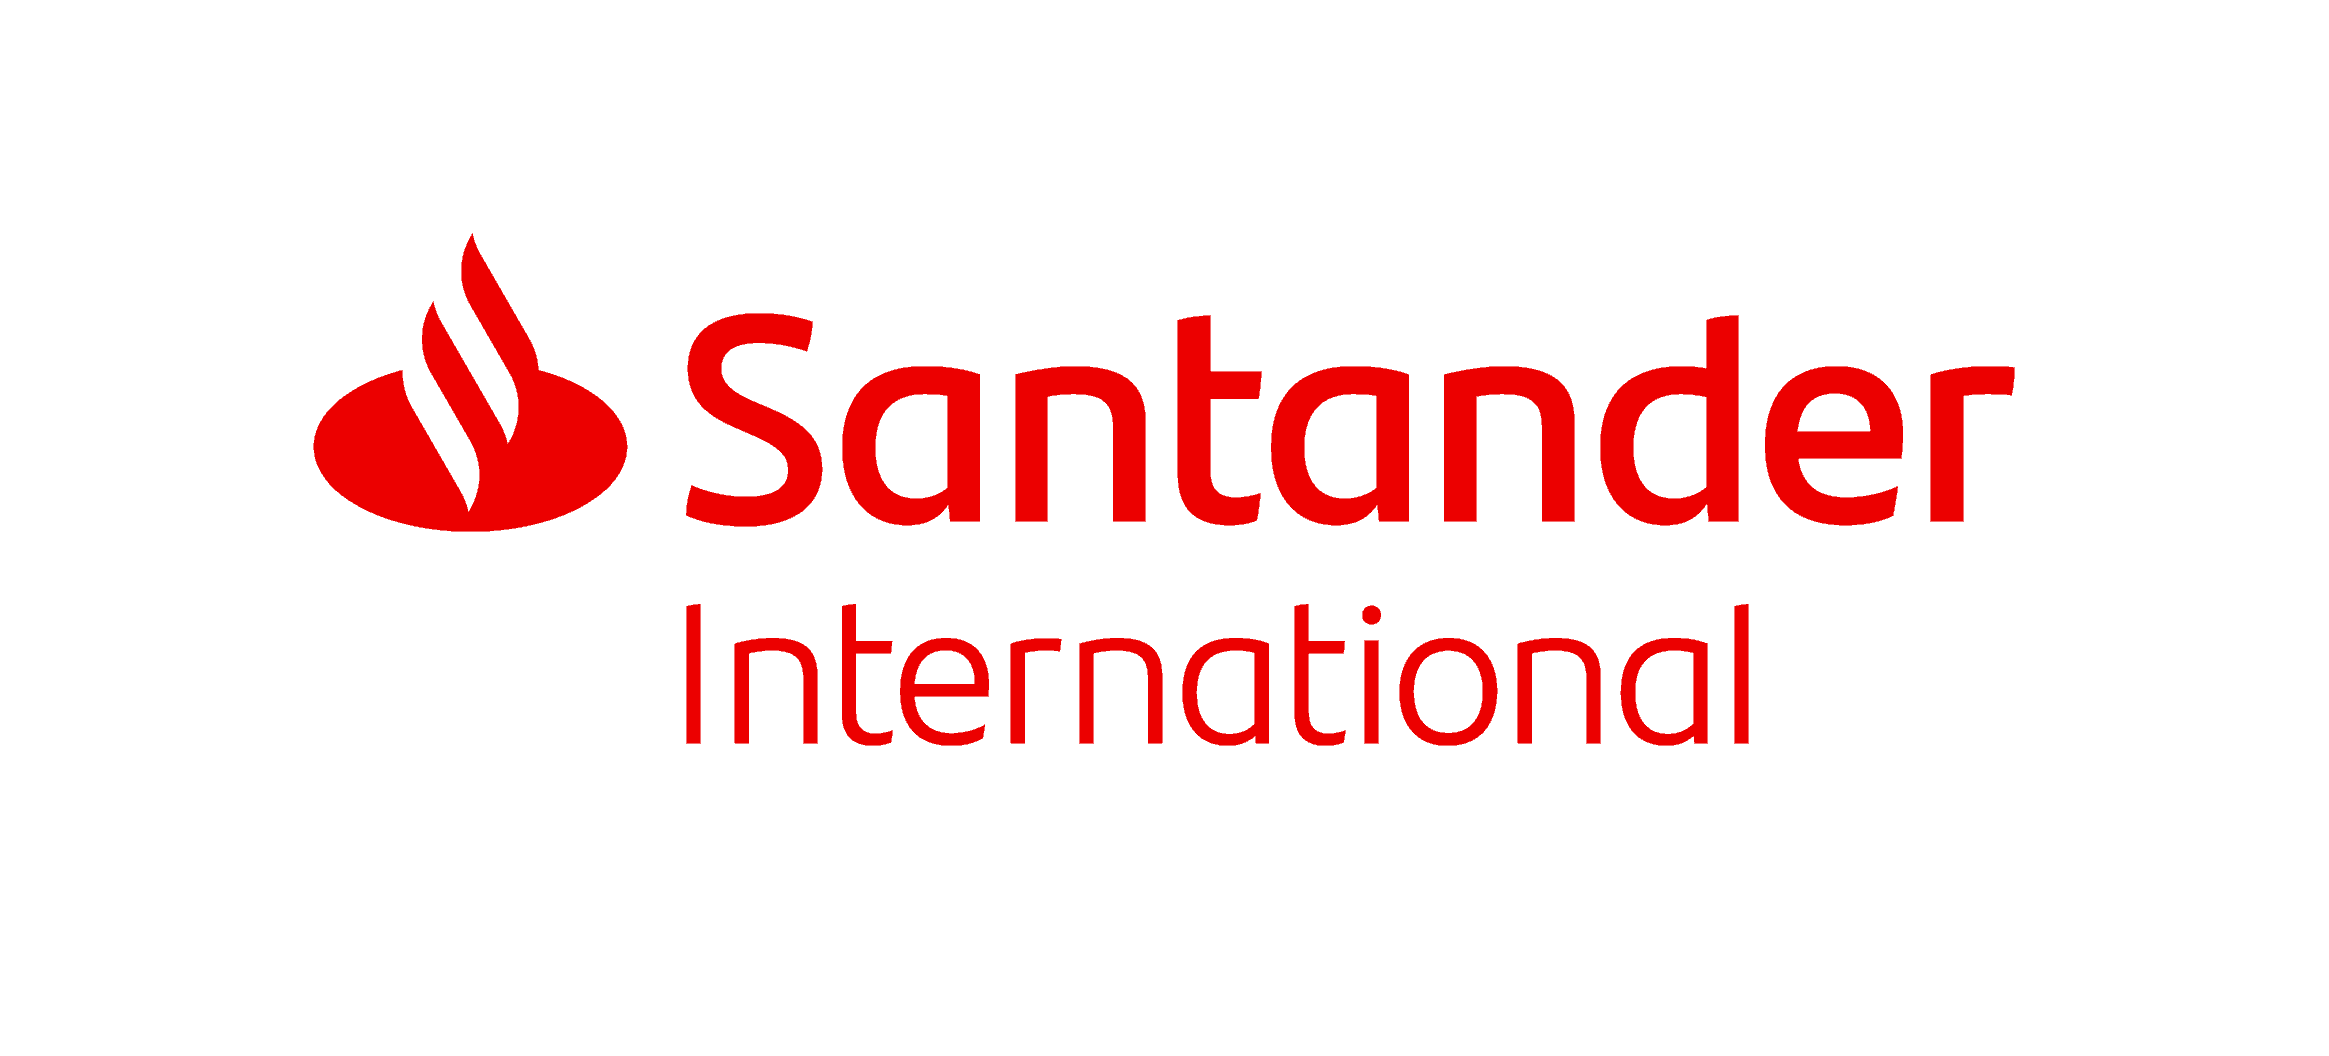 FA_SANTANDER_INTERNATIONAL_CV_POS_RGB